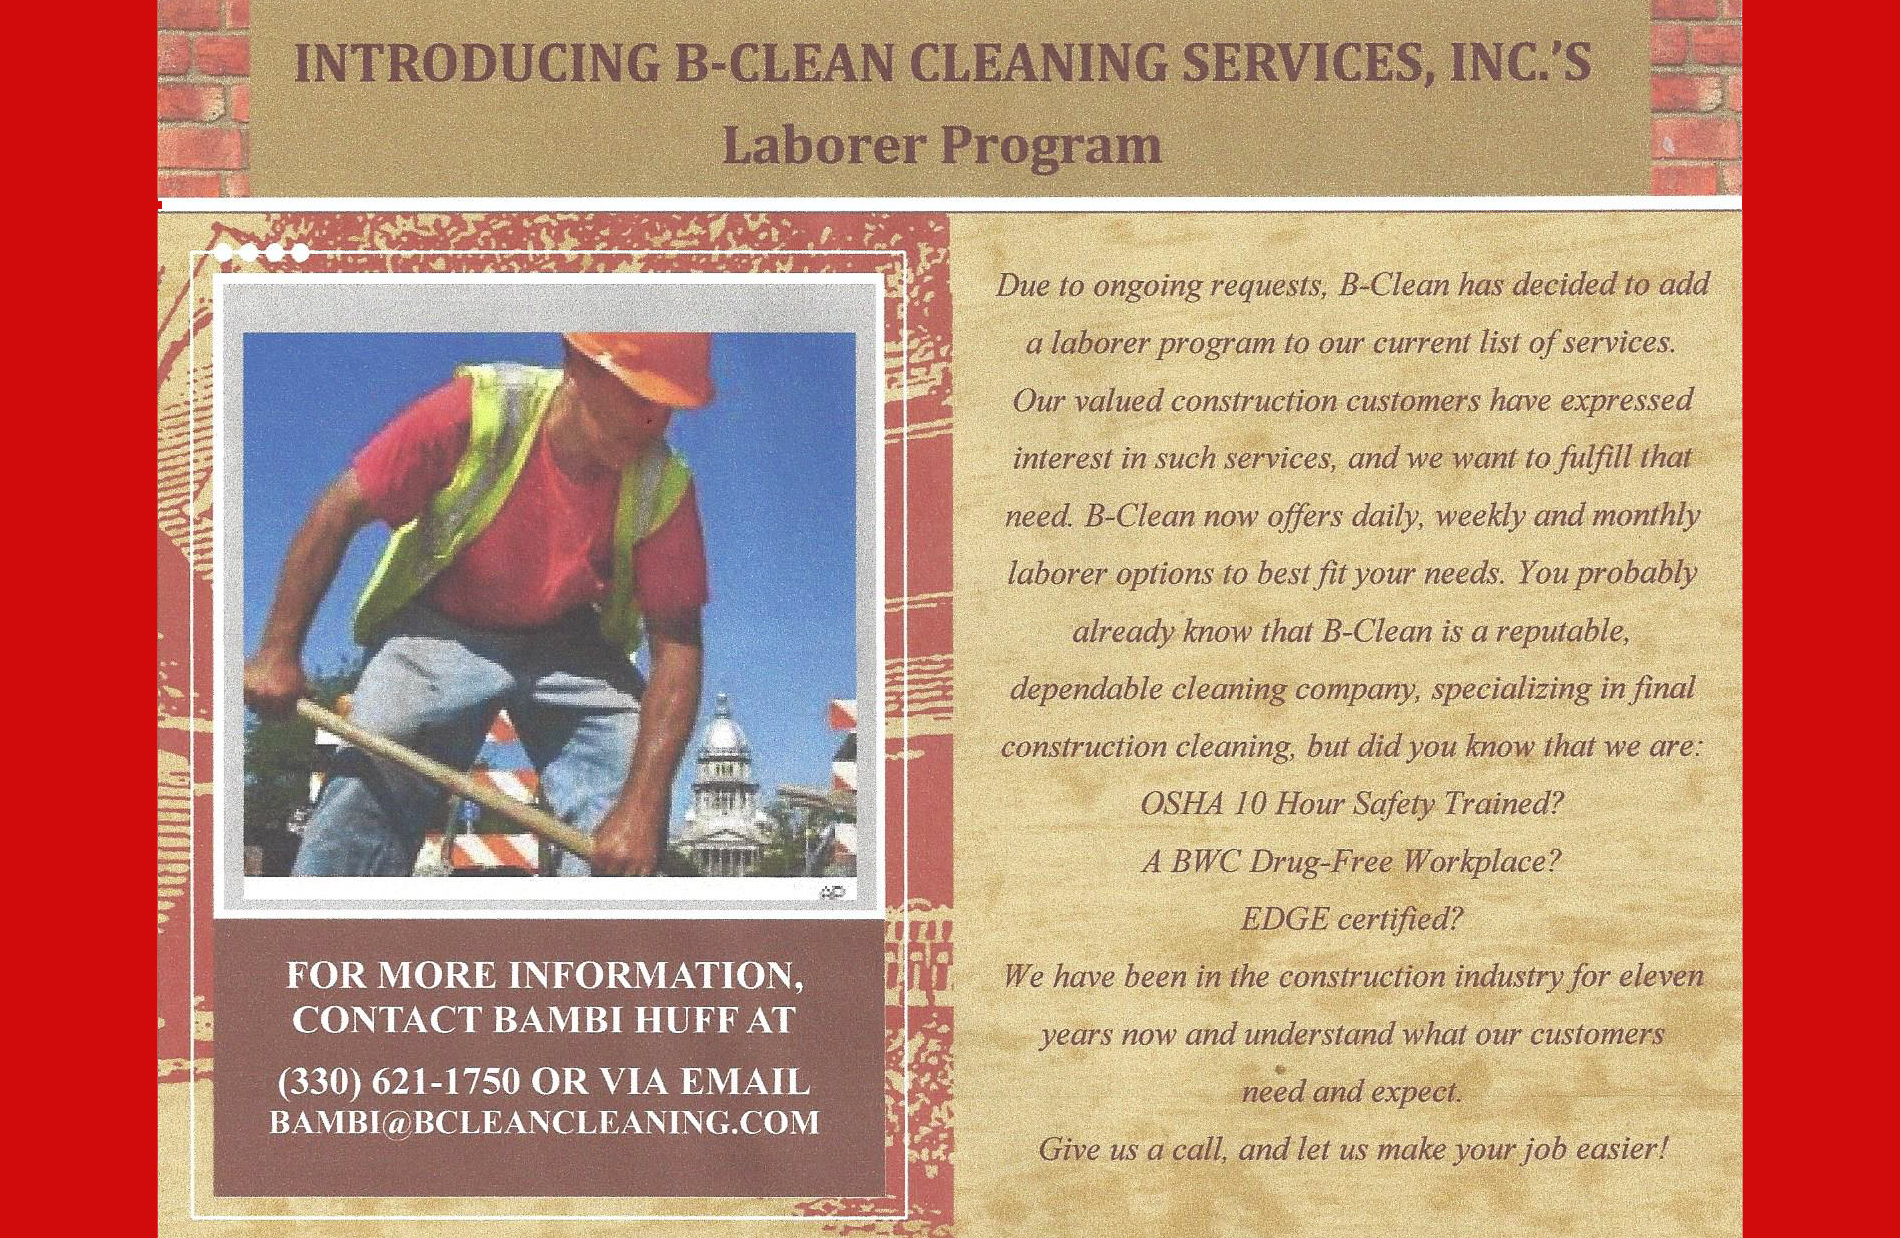 B-Clean Laborer Program 2